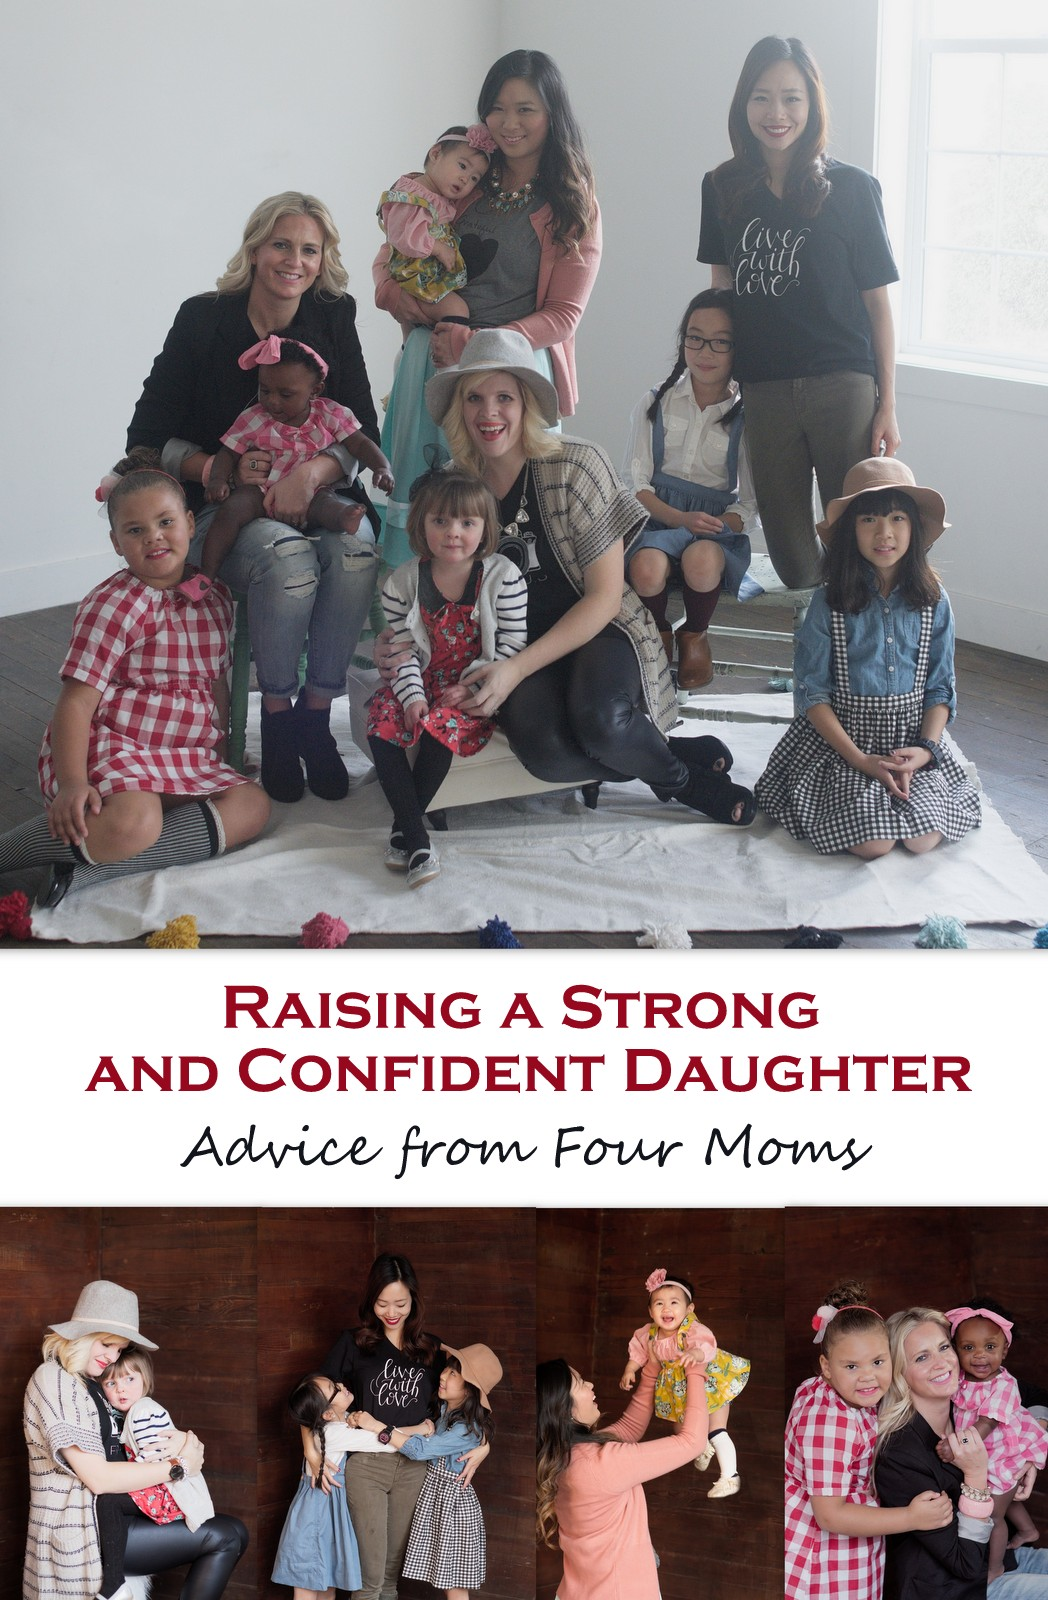 Raising A Strong and Confident Daughter: Advice from Four Moms